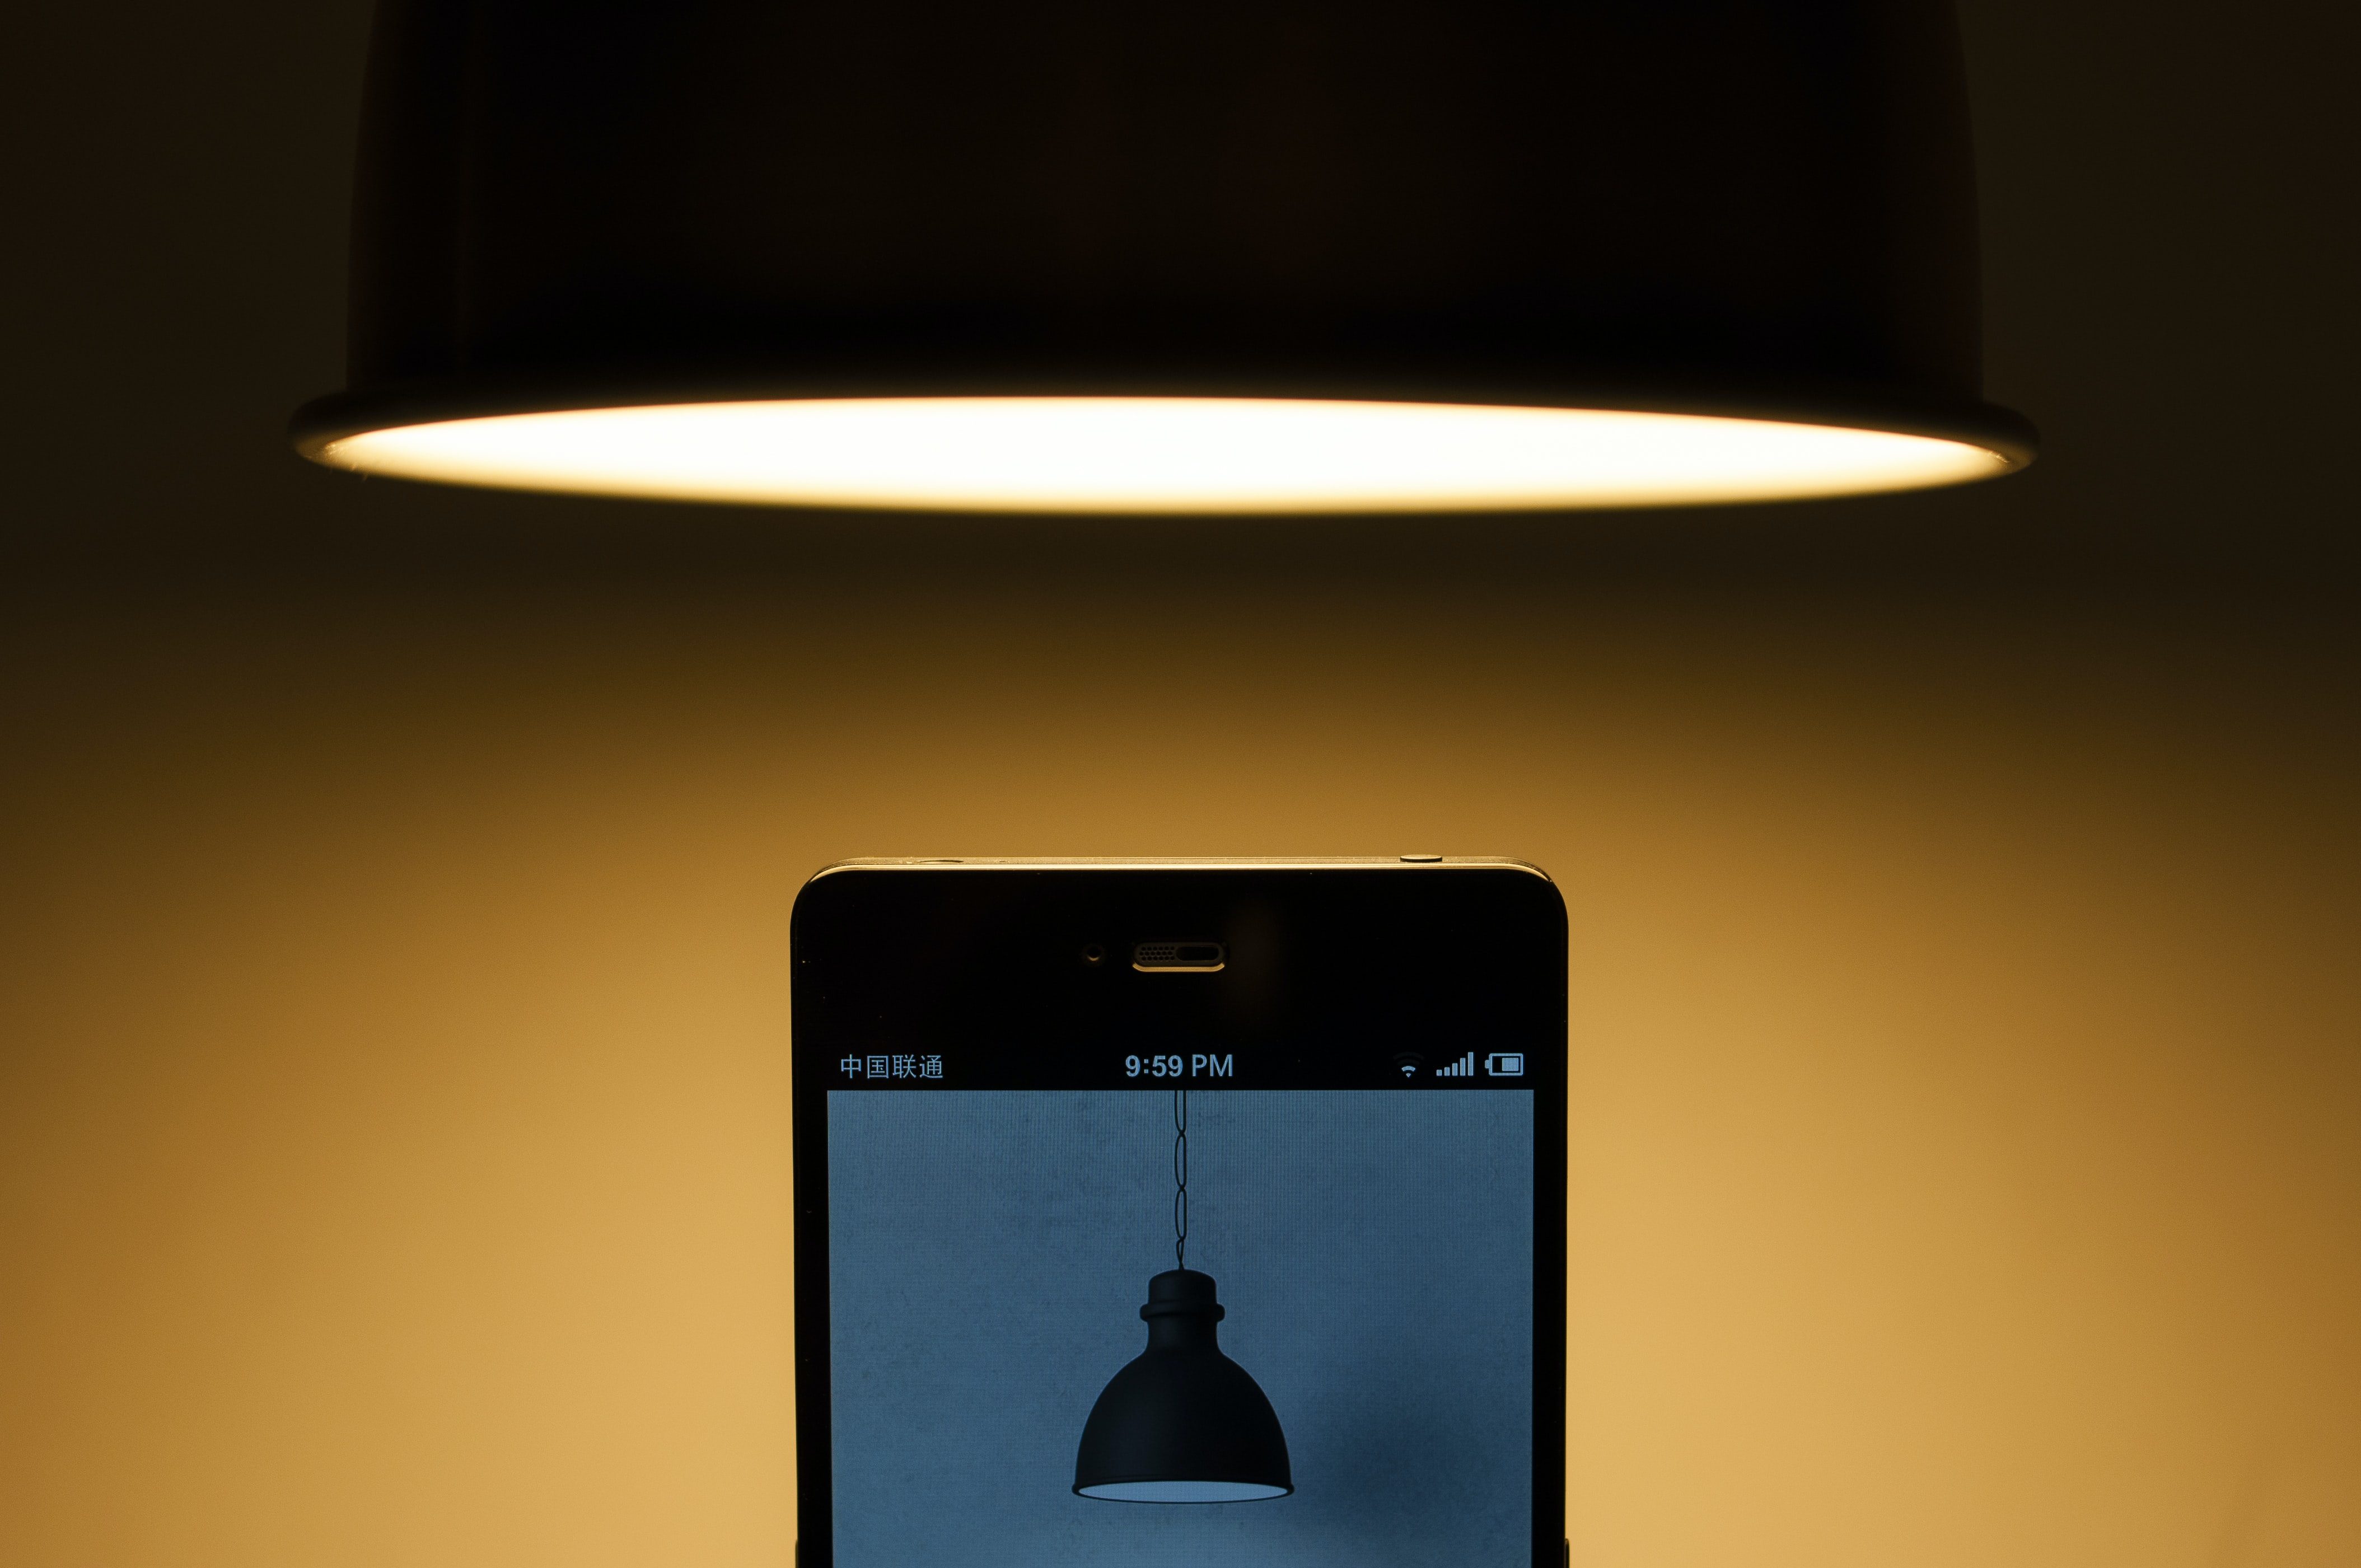 Lamp hangs above cellphone that displays a photo of a lamp